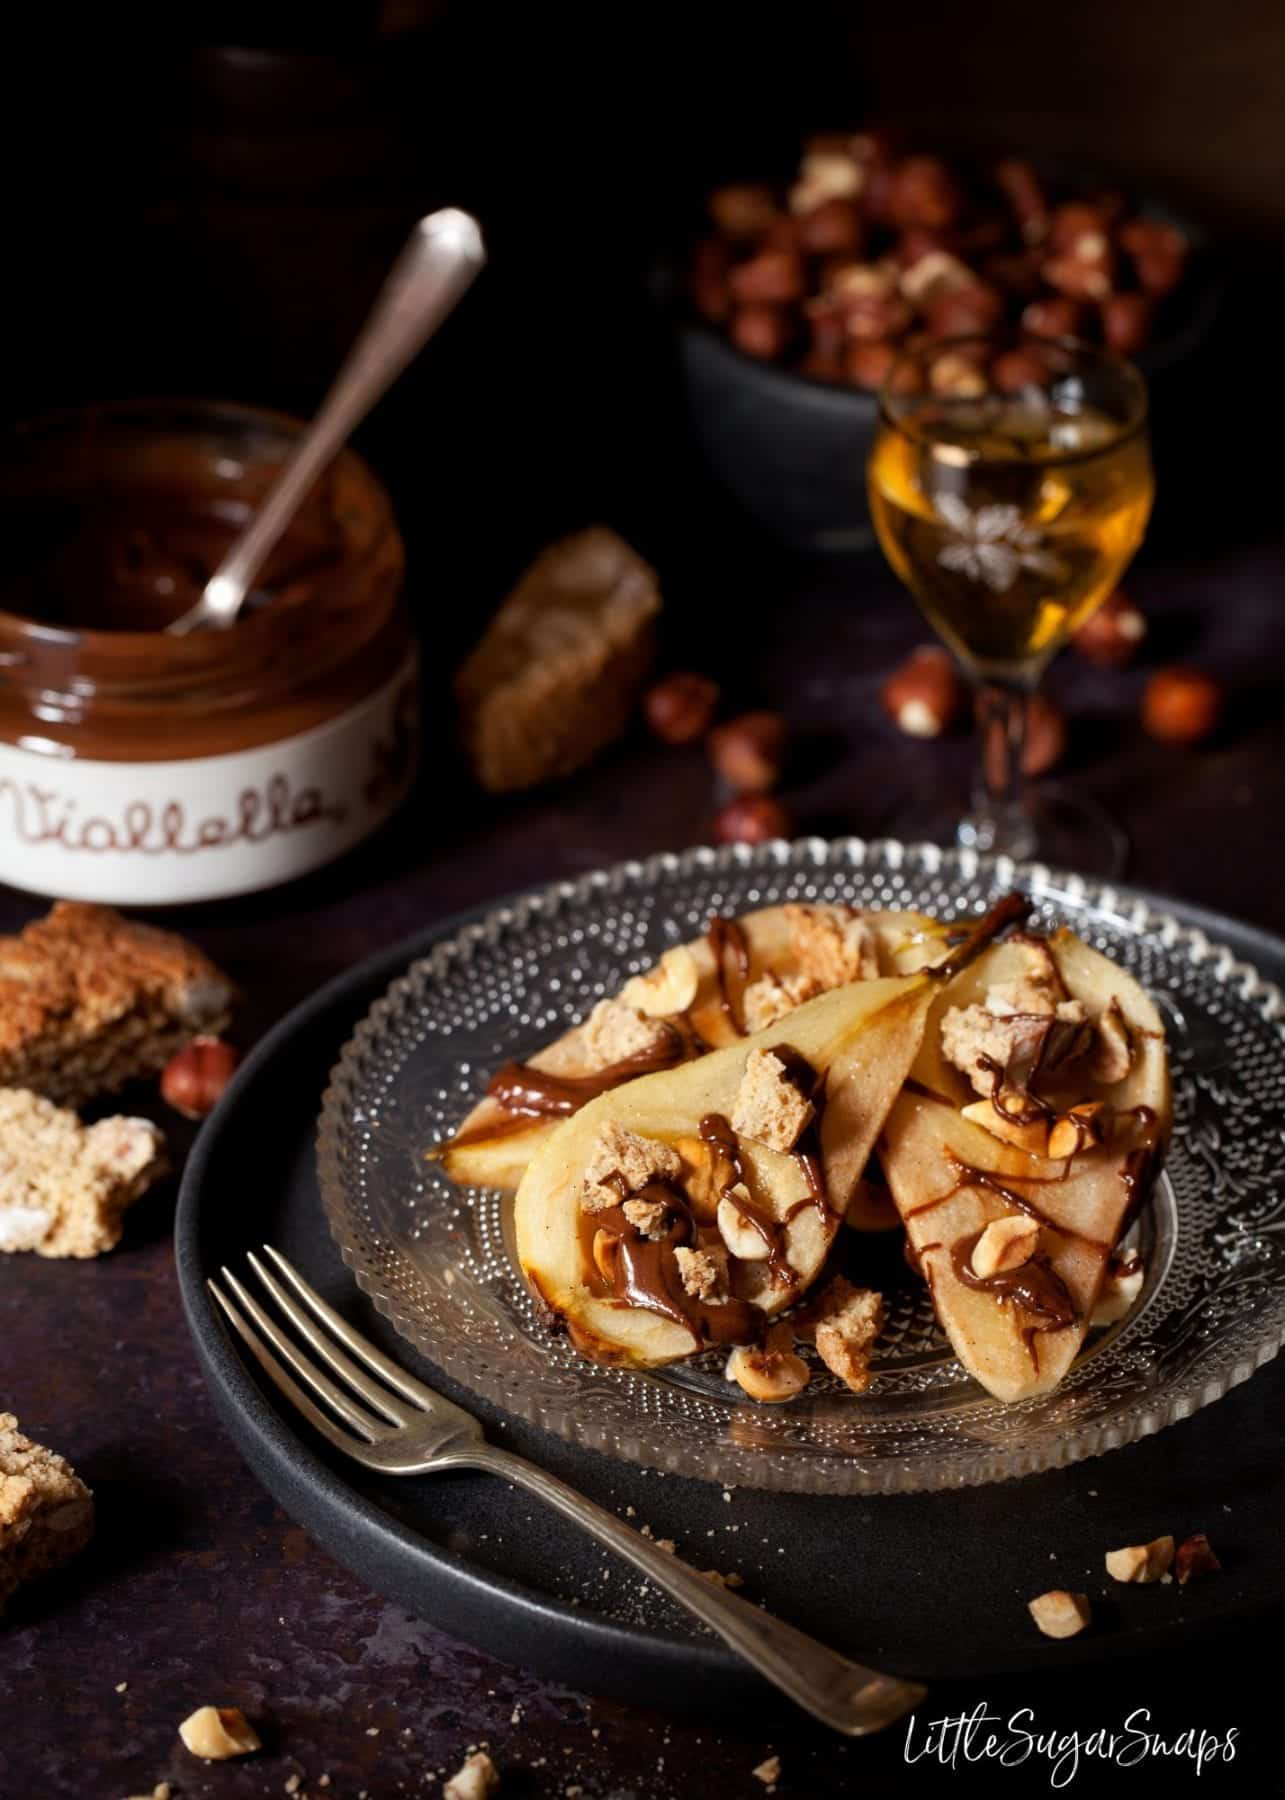 Honey Baked Pears with Chocolate, cantucci biscuits on a plate with a glass of vin santo and a jar of chocolate sauce